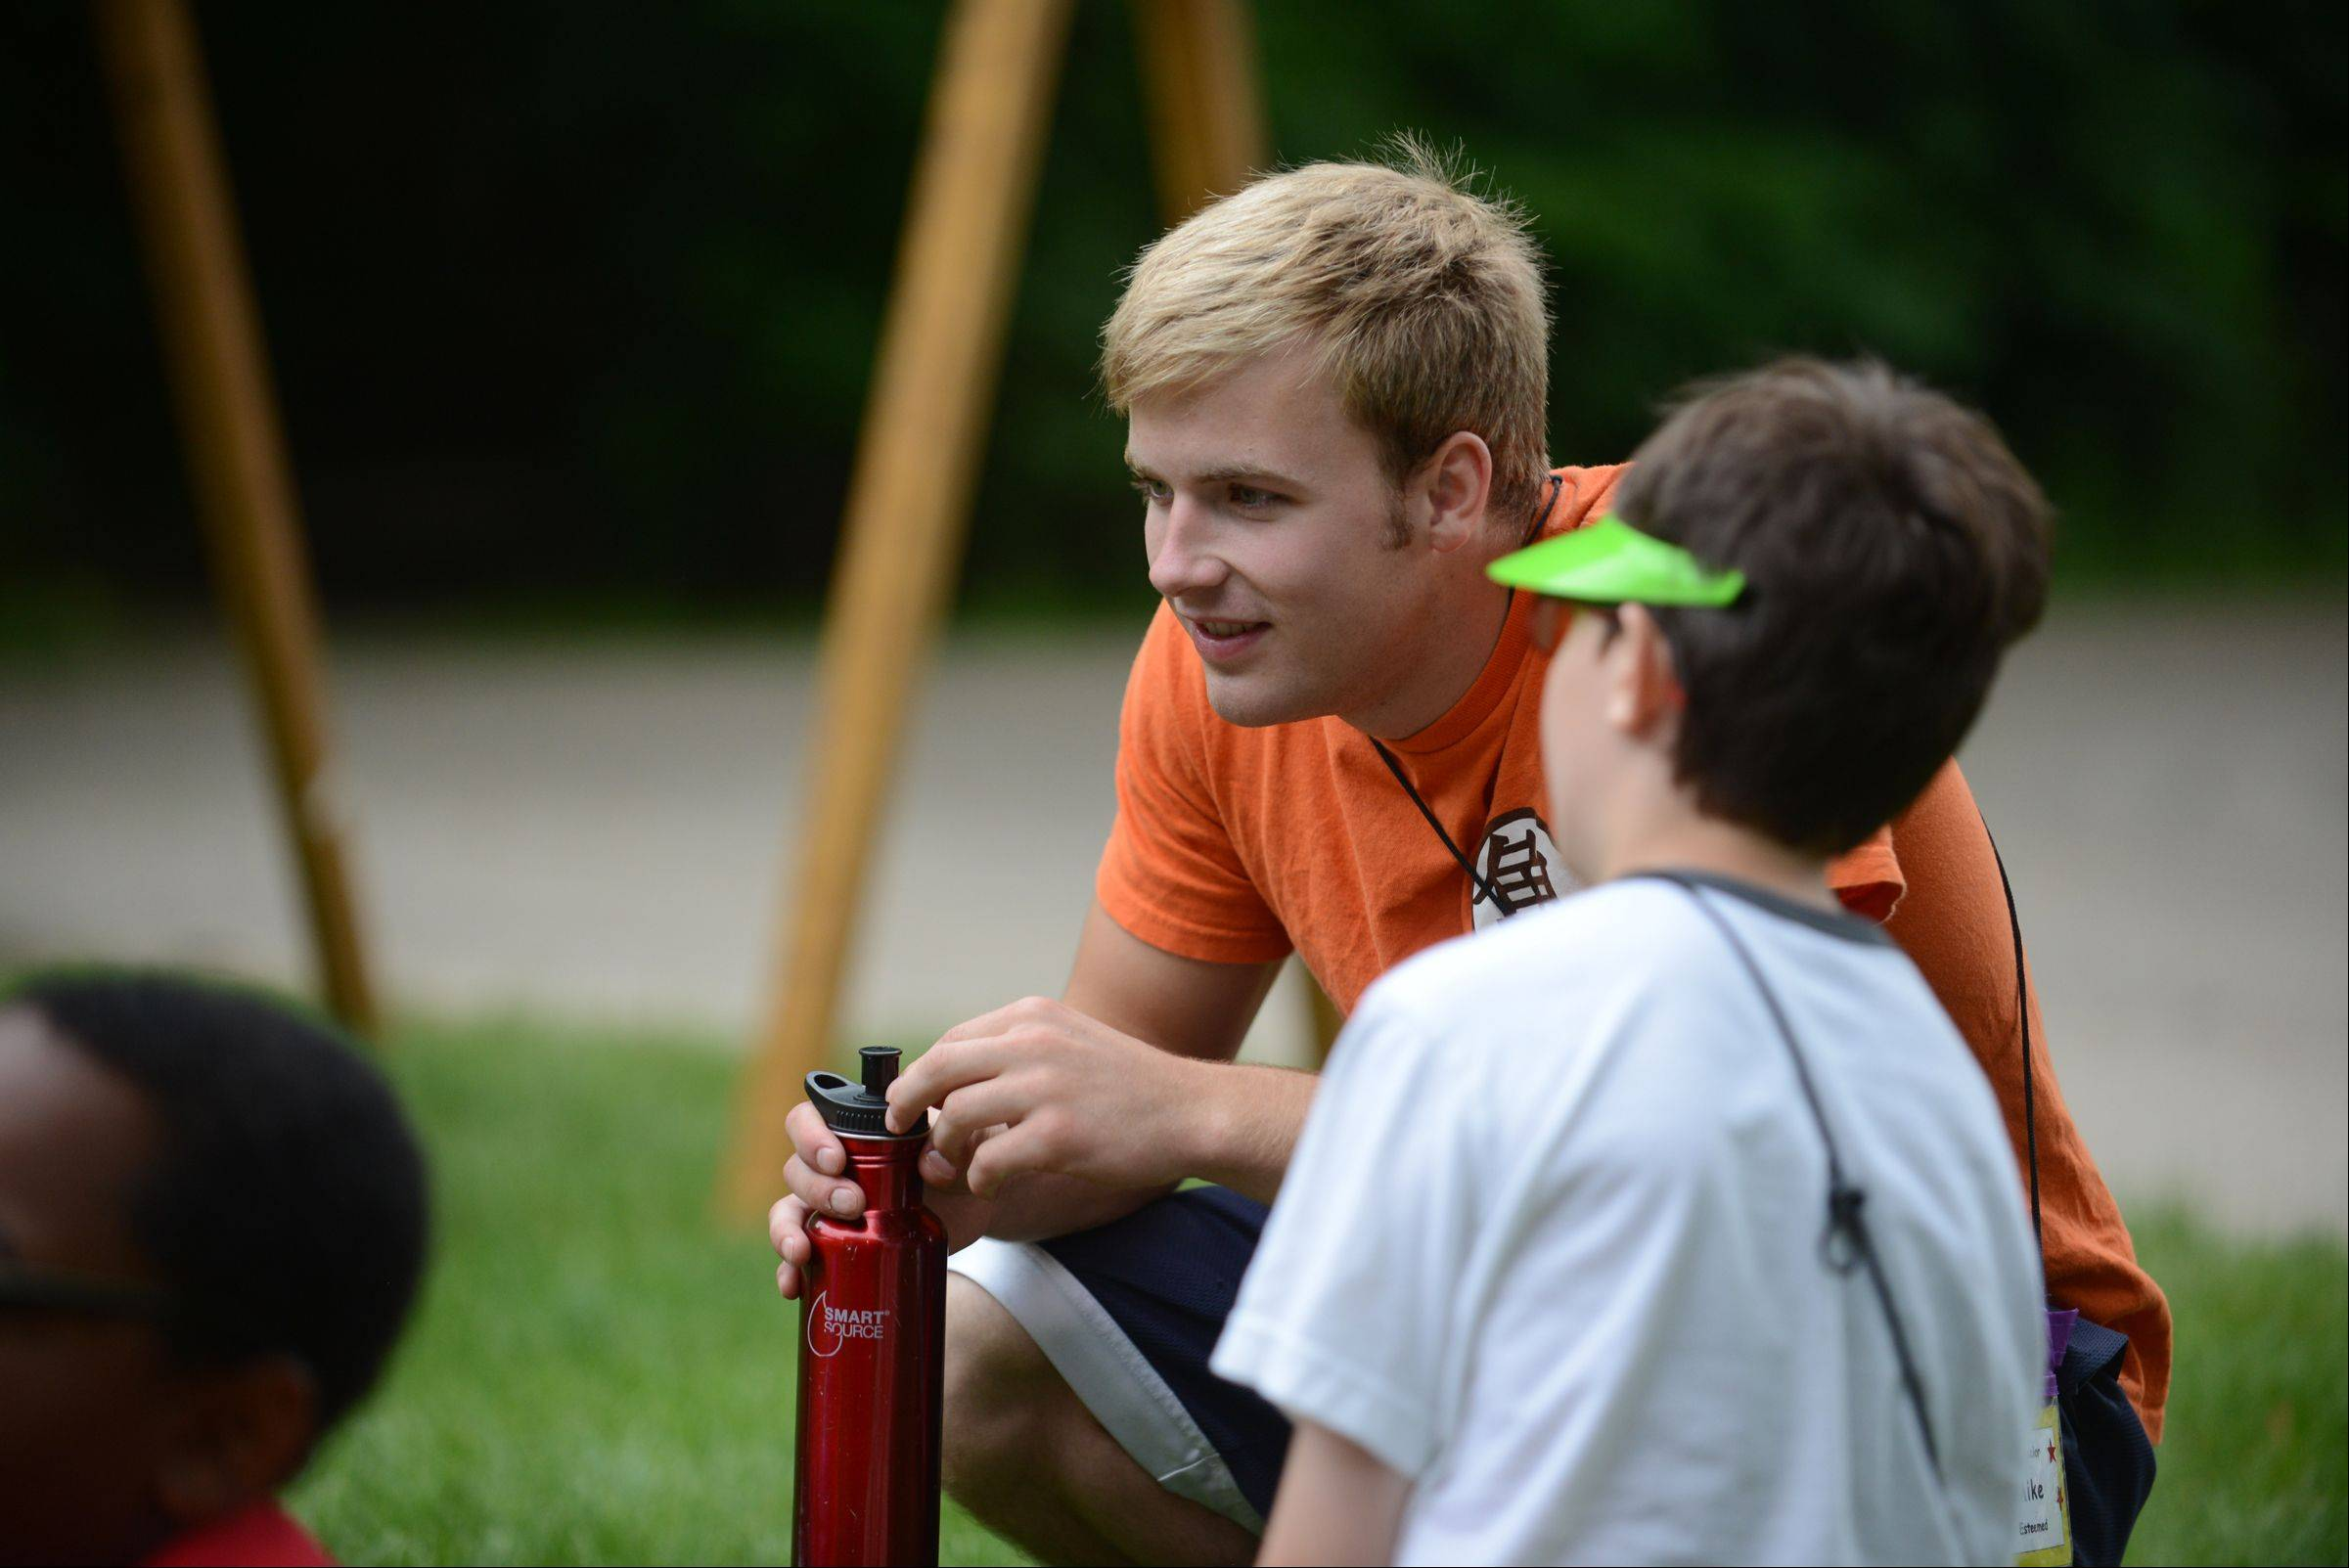 Royal Family Kids Camp counselor Mike du Vair listens to a story being told to him by his camper.